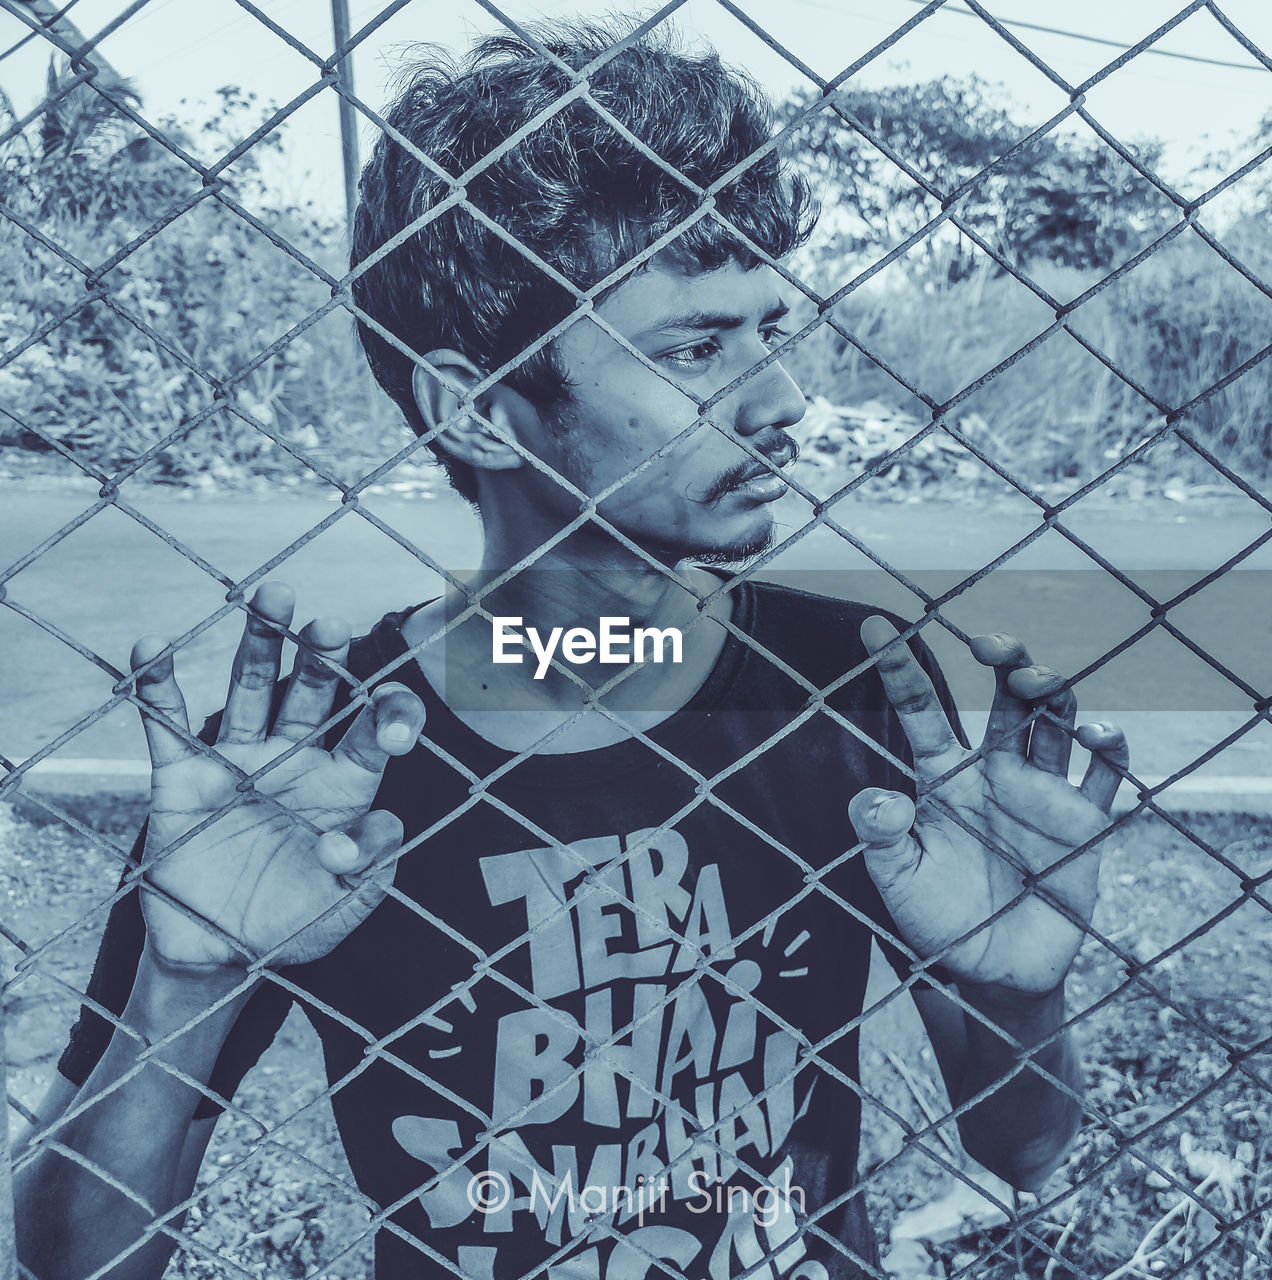 PORTRAIT OF BOY LOOKING THROUGH CHAINLINK FENCE IN WATER